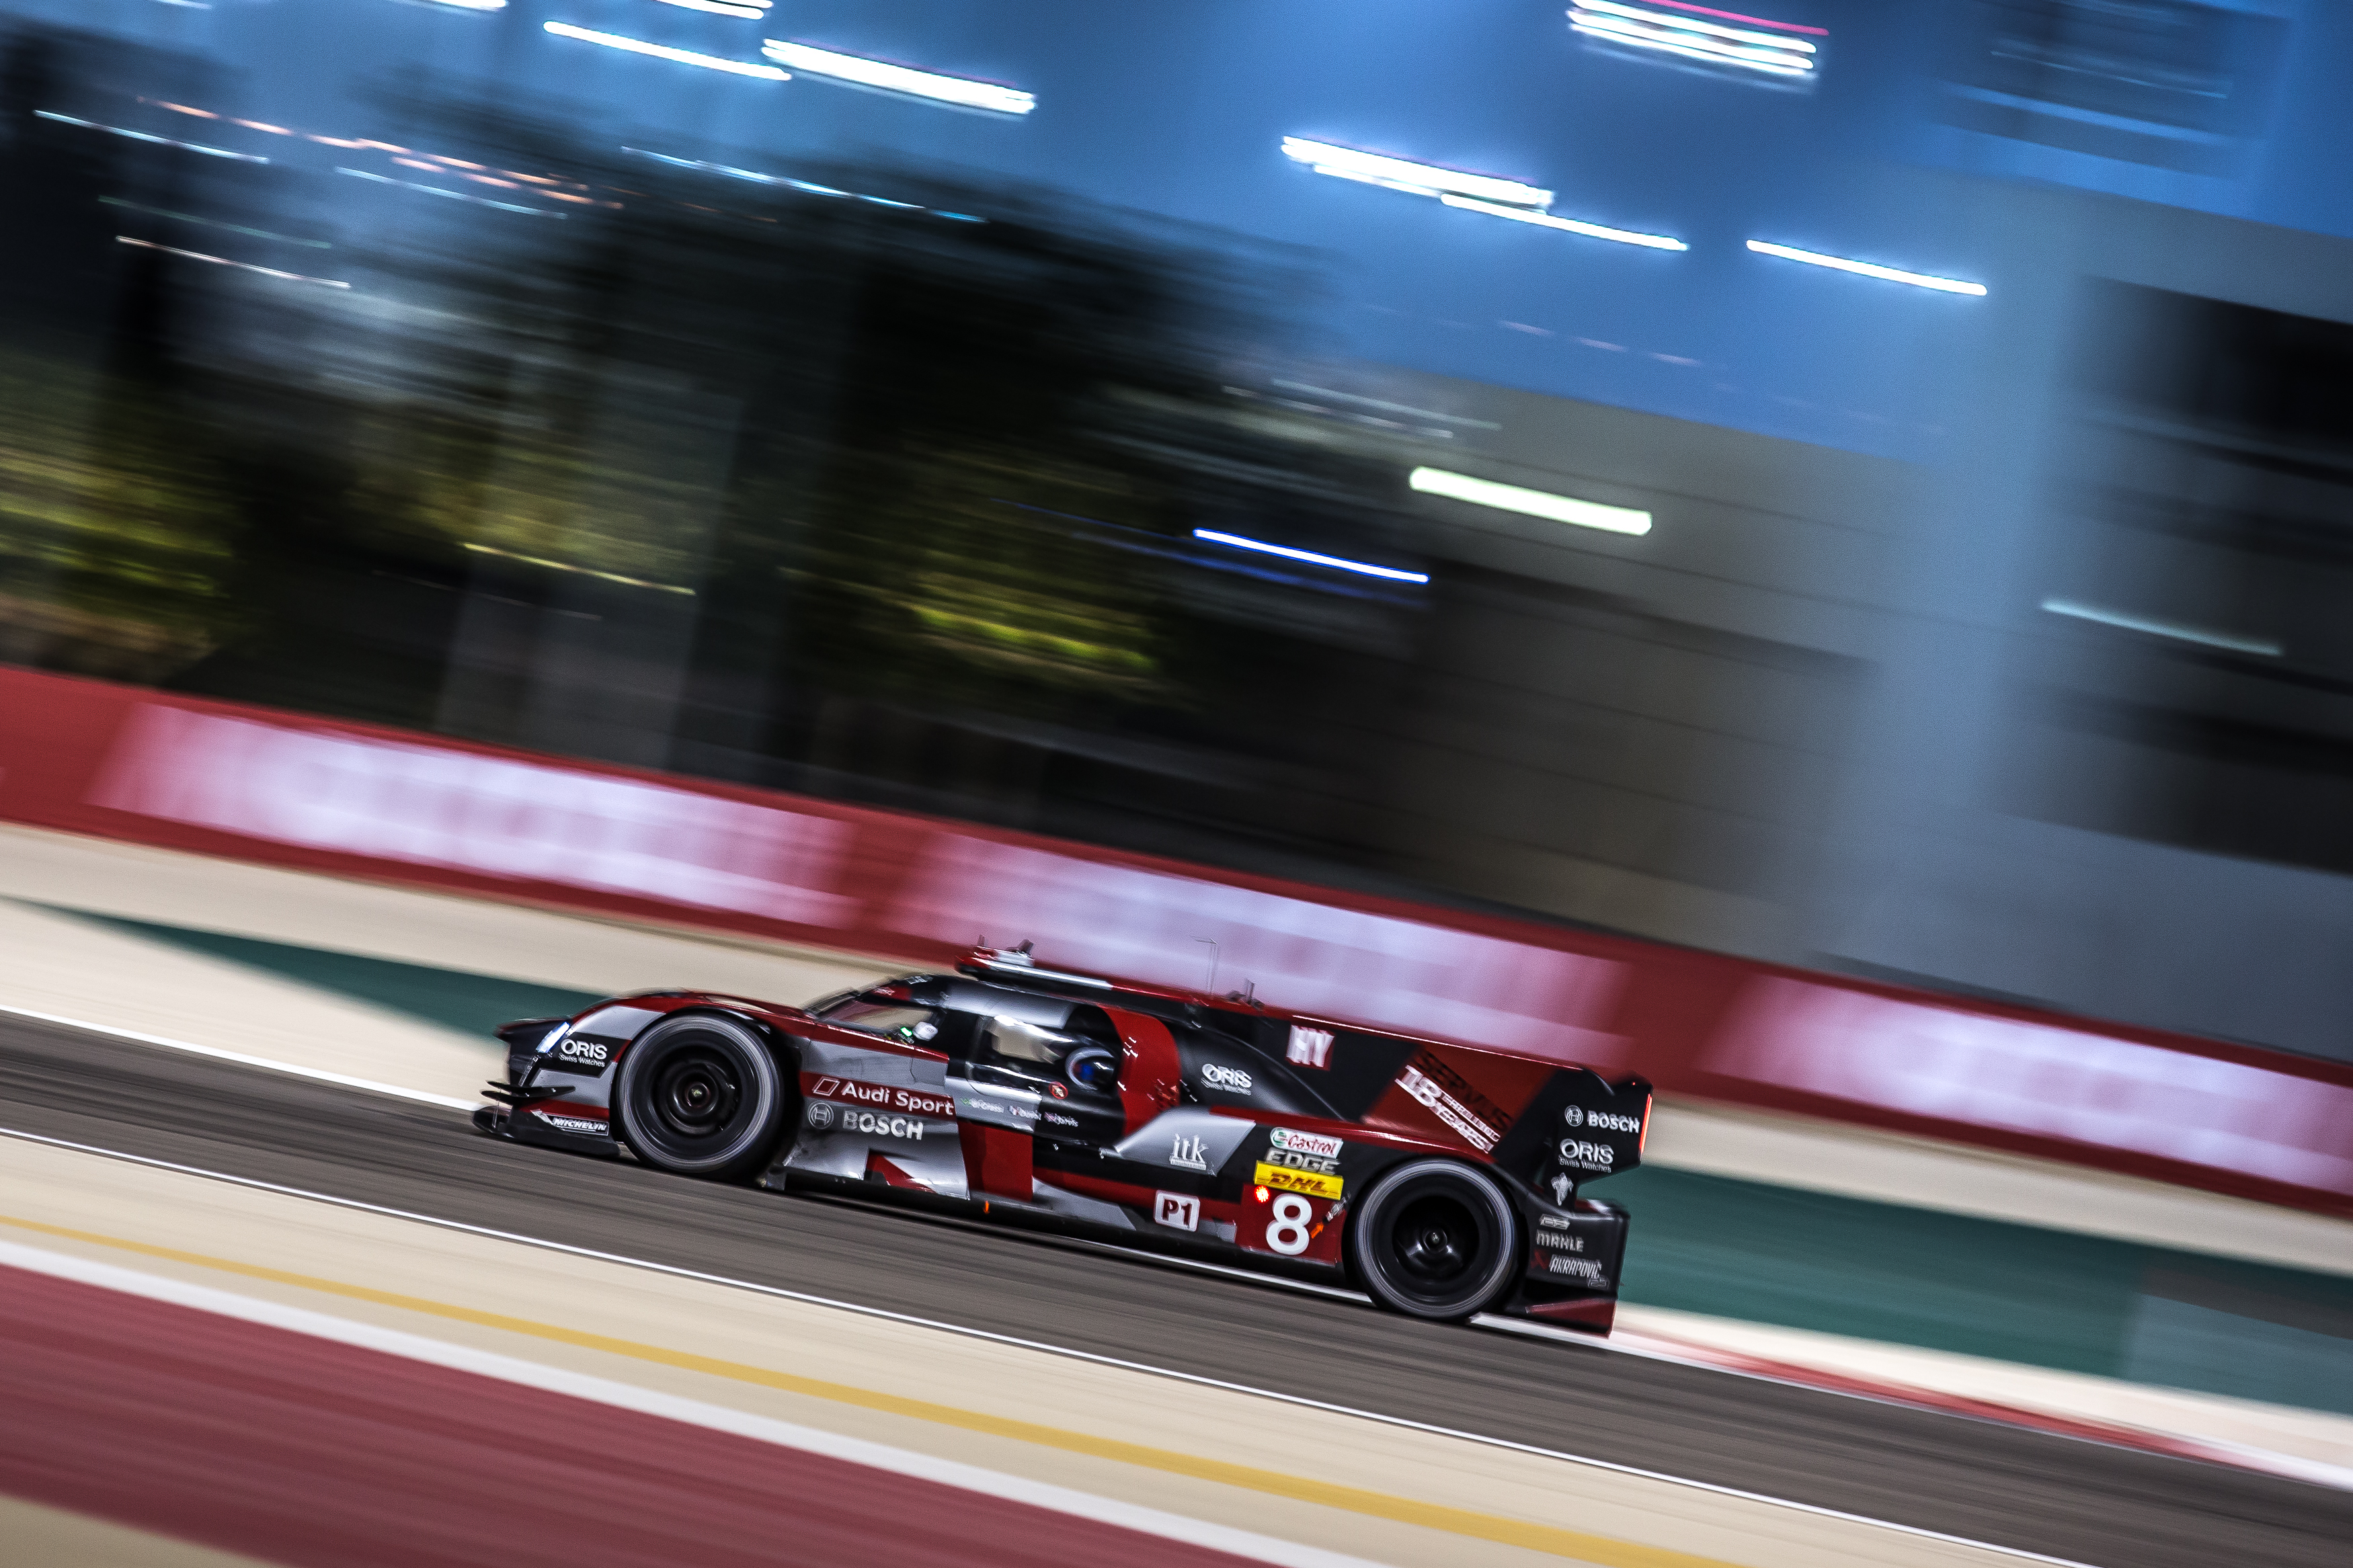 audi signs off from wec with 1 2 in bahrain as porsche clinches title motorsportstalk nbc sports 2